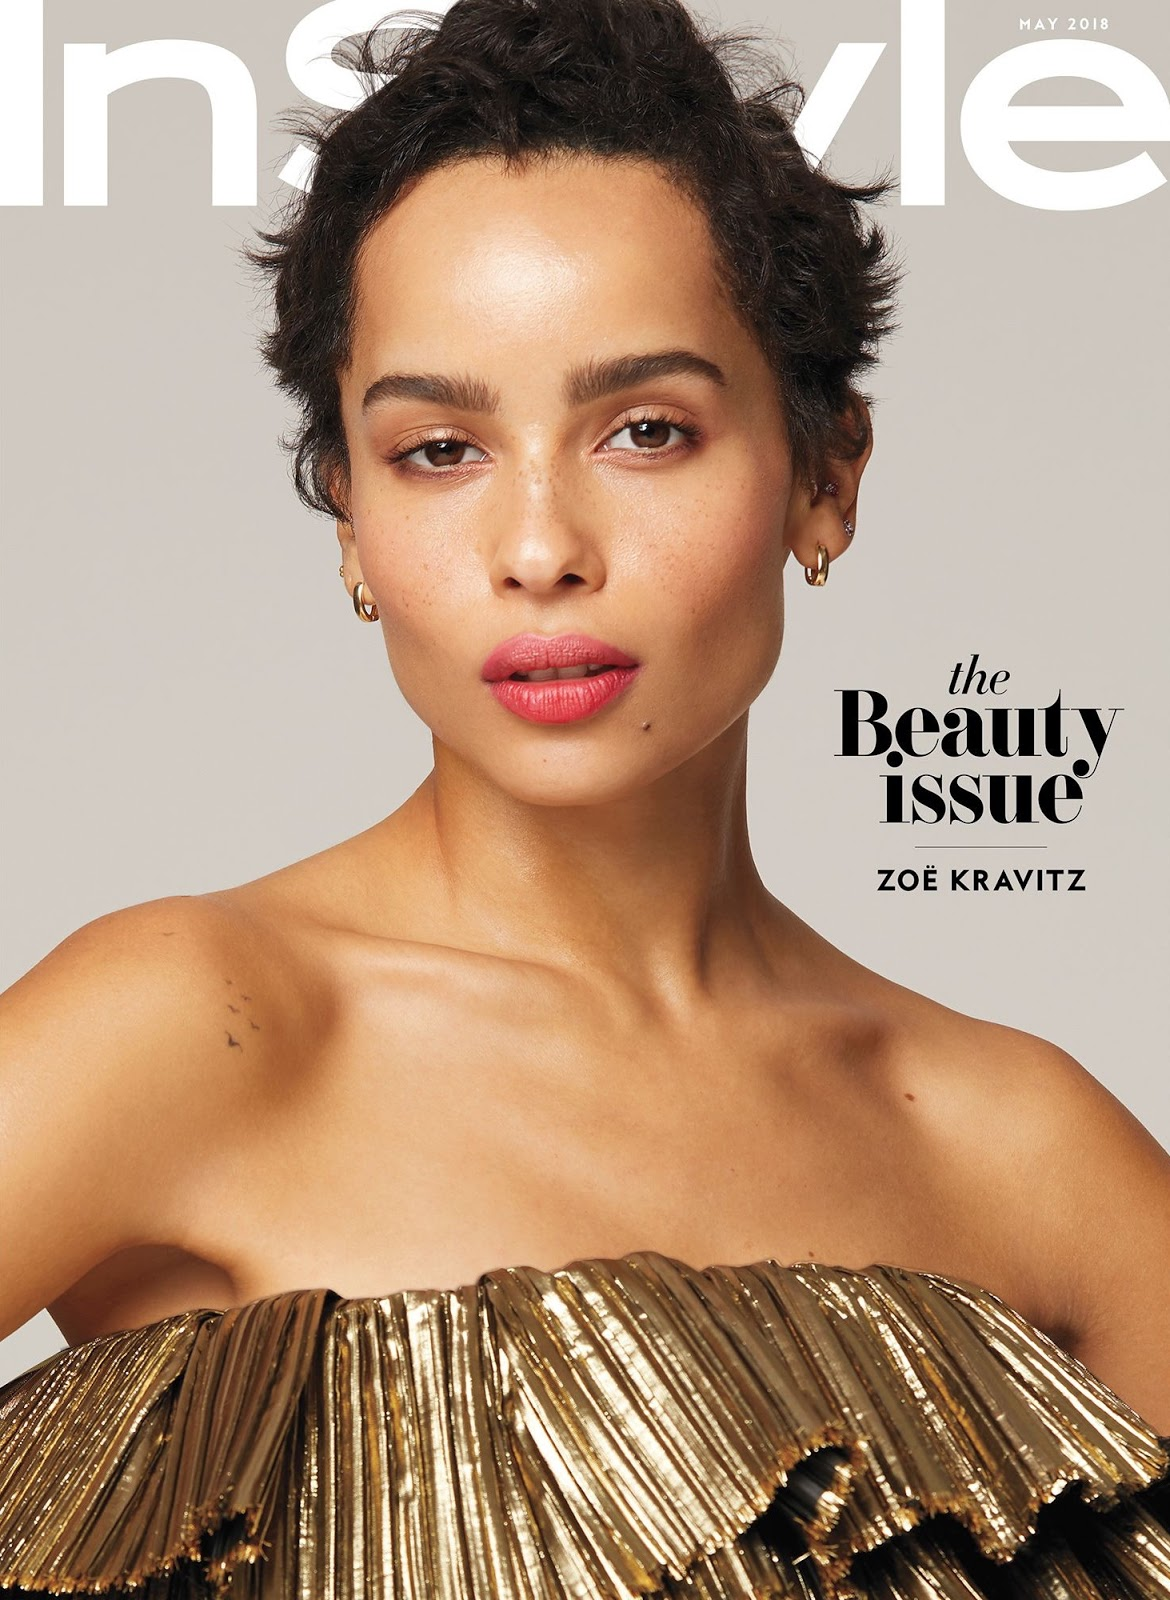 Zoe Kravitz on the May 2018 Cover of InStyle Magazine